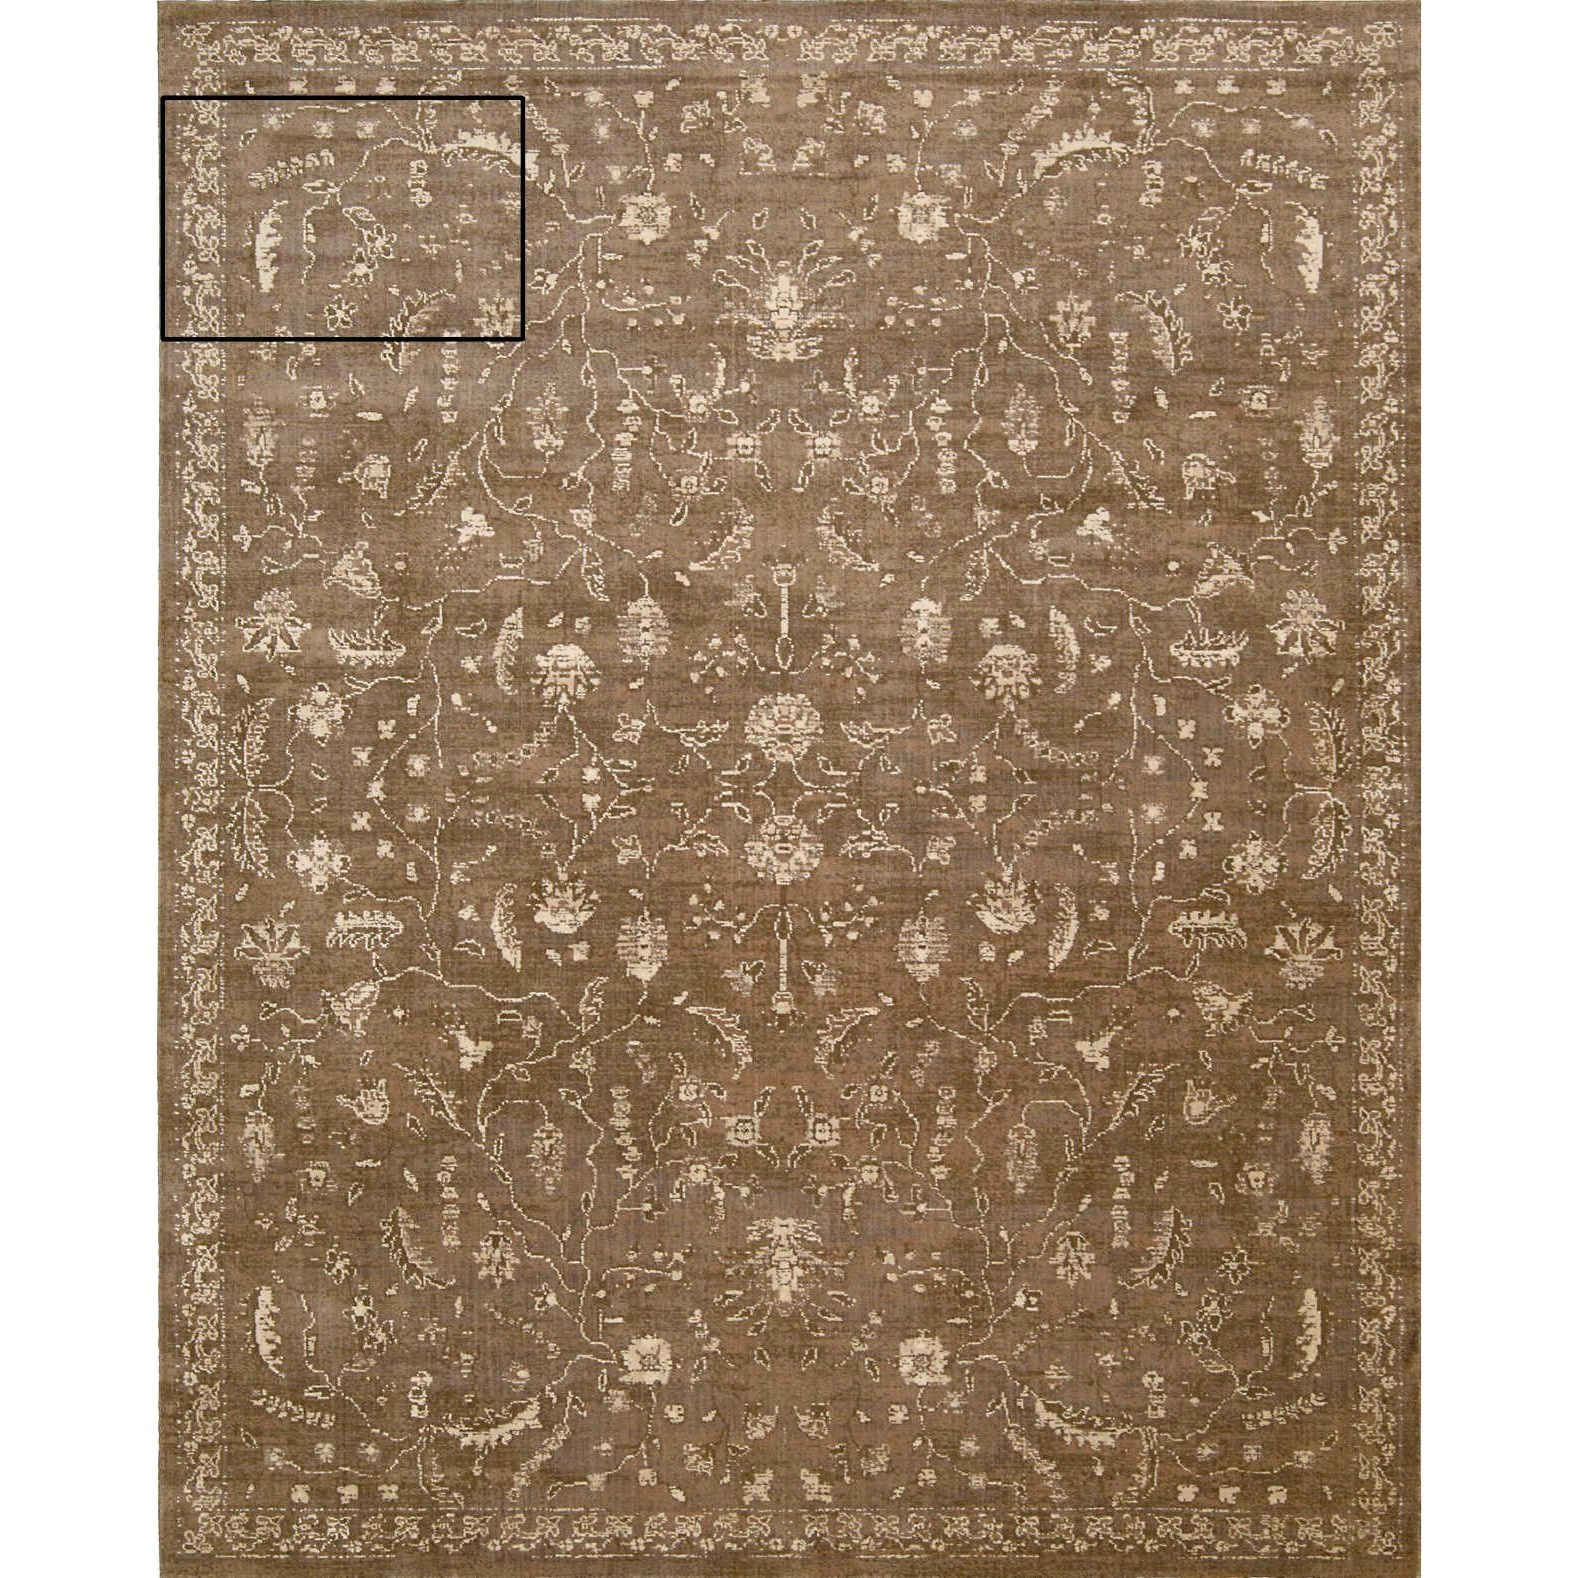 """Silk Elements 9'9"""" x 13' Cocoa Rectangle Rug by Nourison at Home Collections Furniture"""